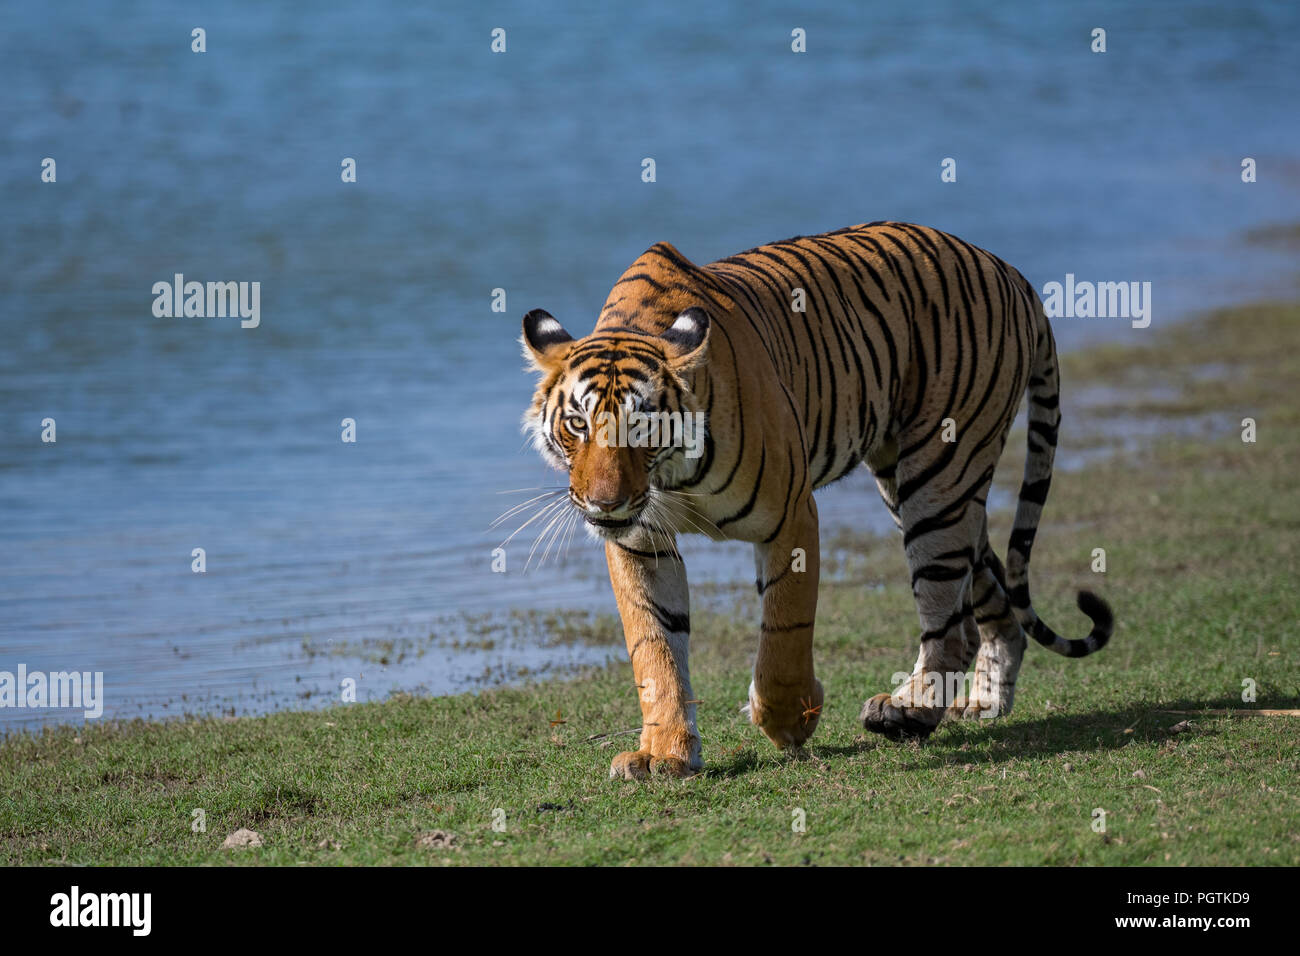 A tigress from ranthambore tiger reserve roaming beside a